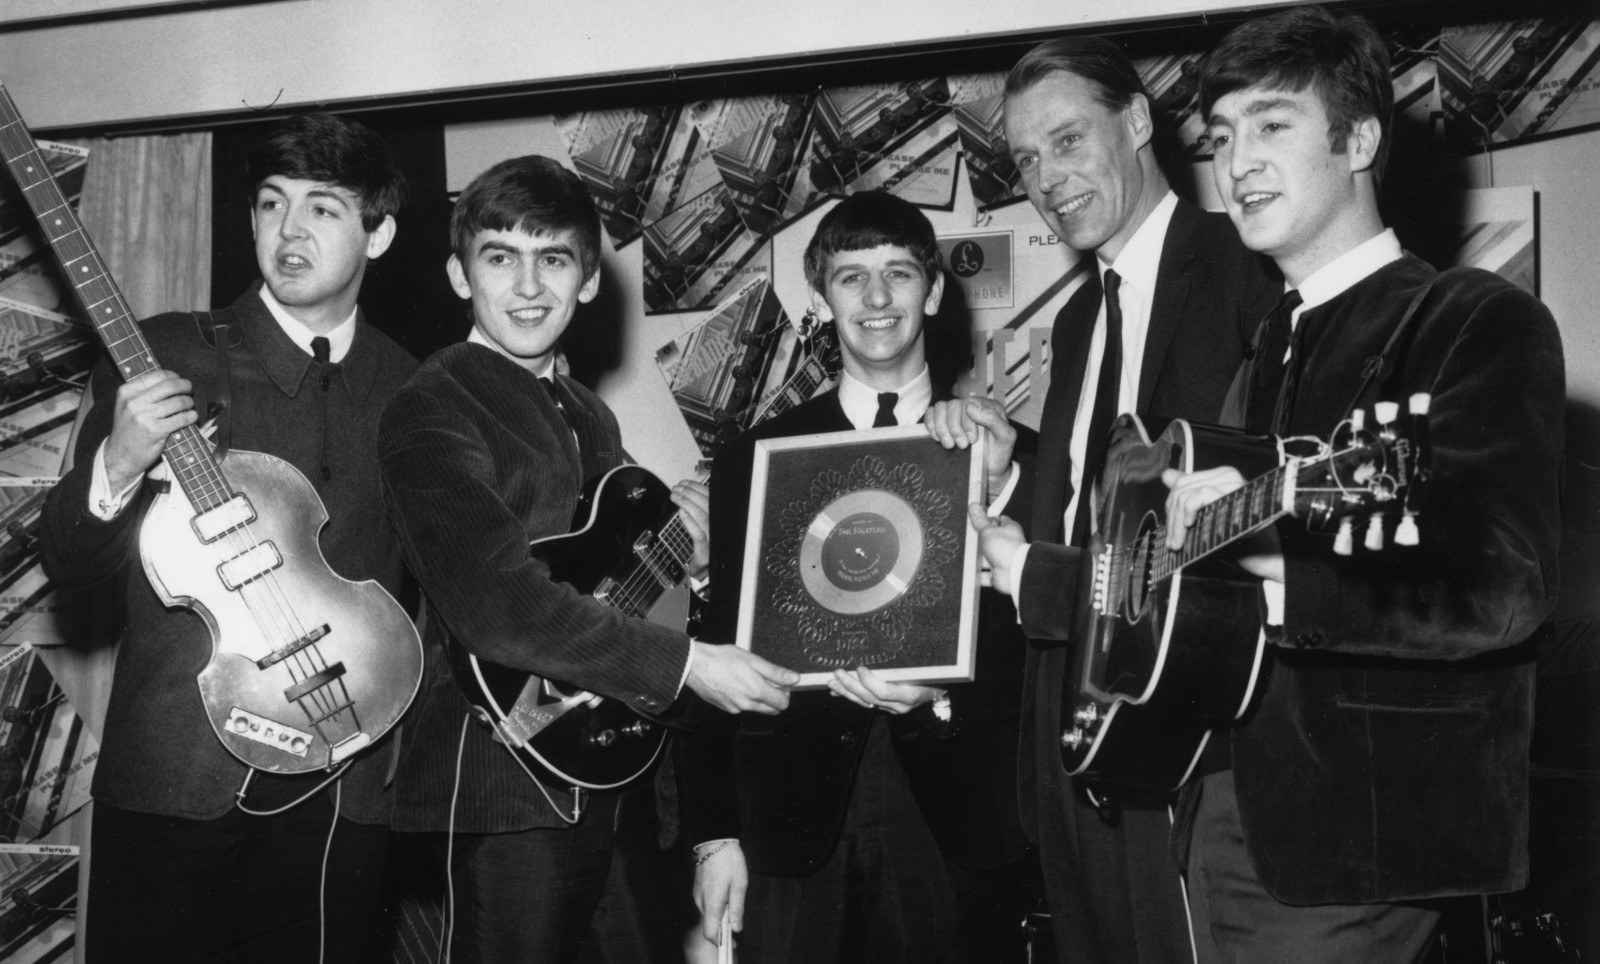 Beatles Producer George Martin in April 1963 with The Beatles. (Photo by Chris Ware/Keystone/Getty Images)